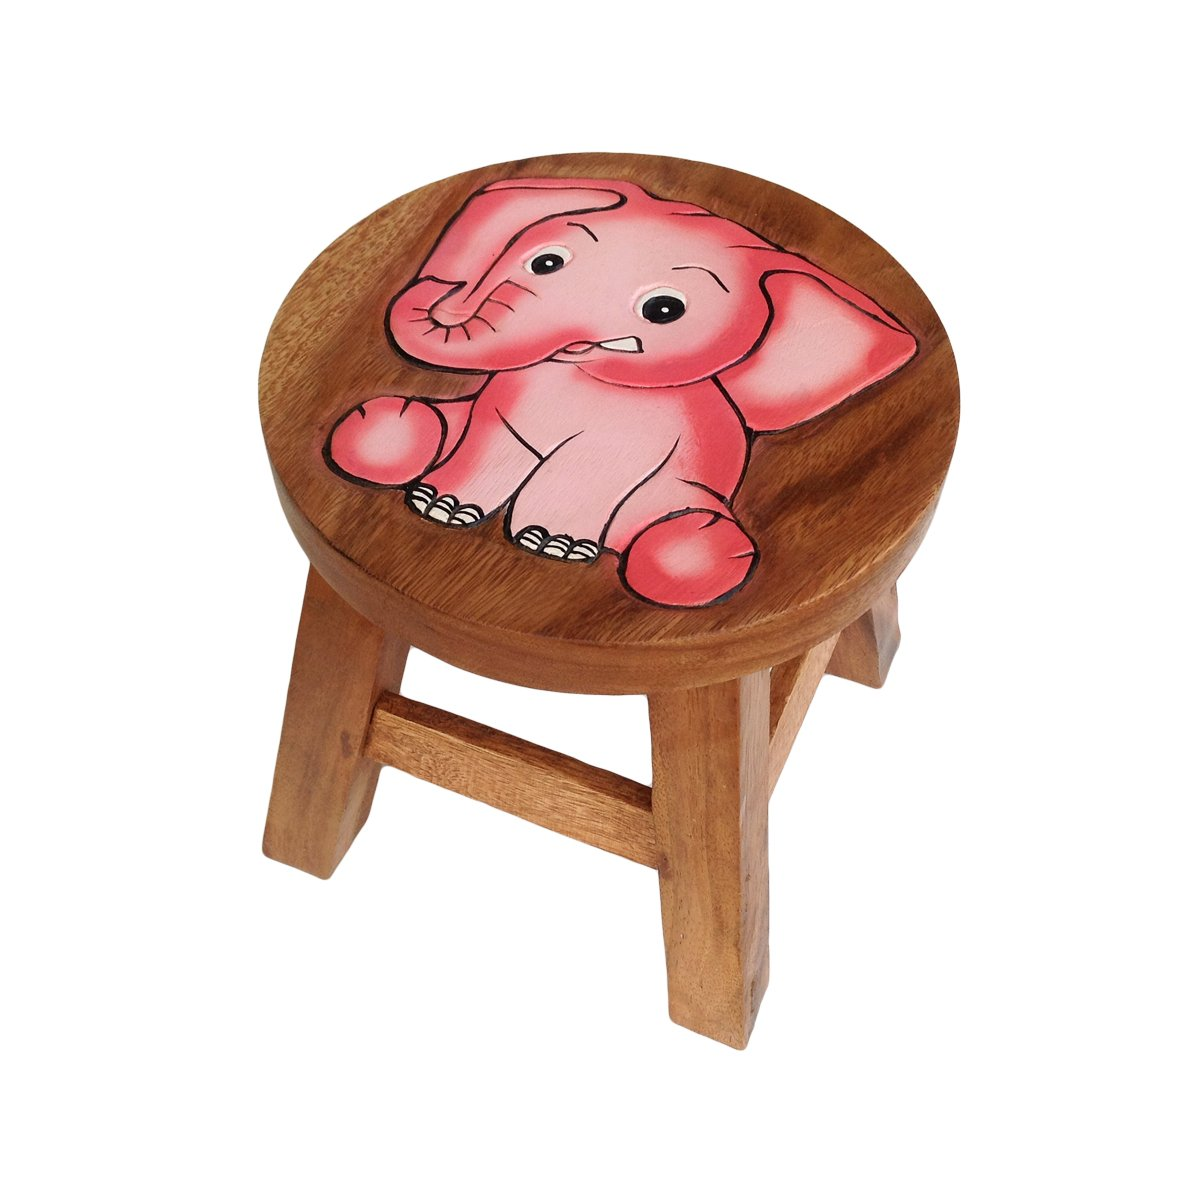 Child Seat Solid Wood Stool for Kids ~ Small Chair for Children by Collumino (Blue Elephant) Collumino®